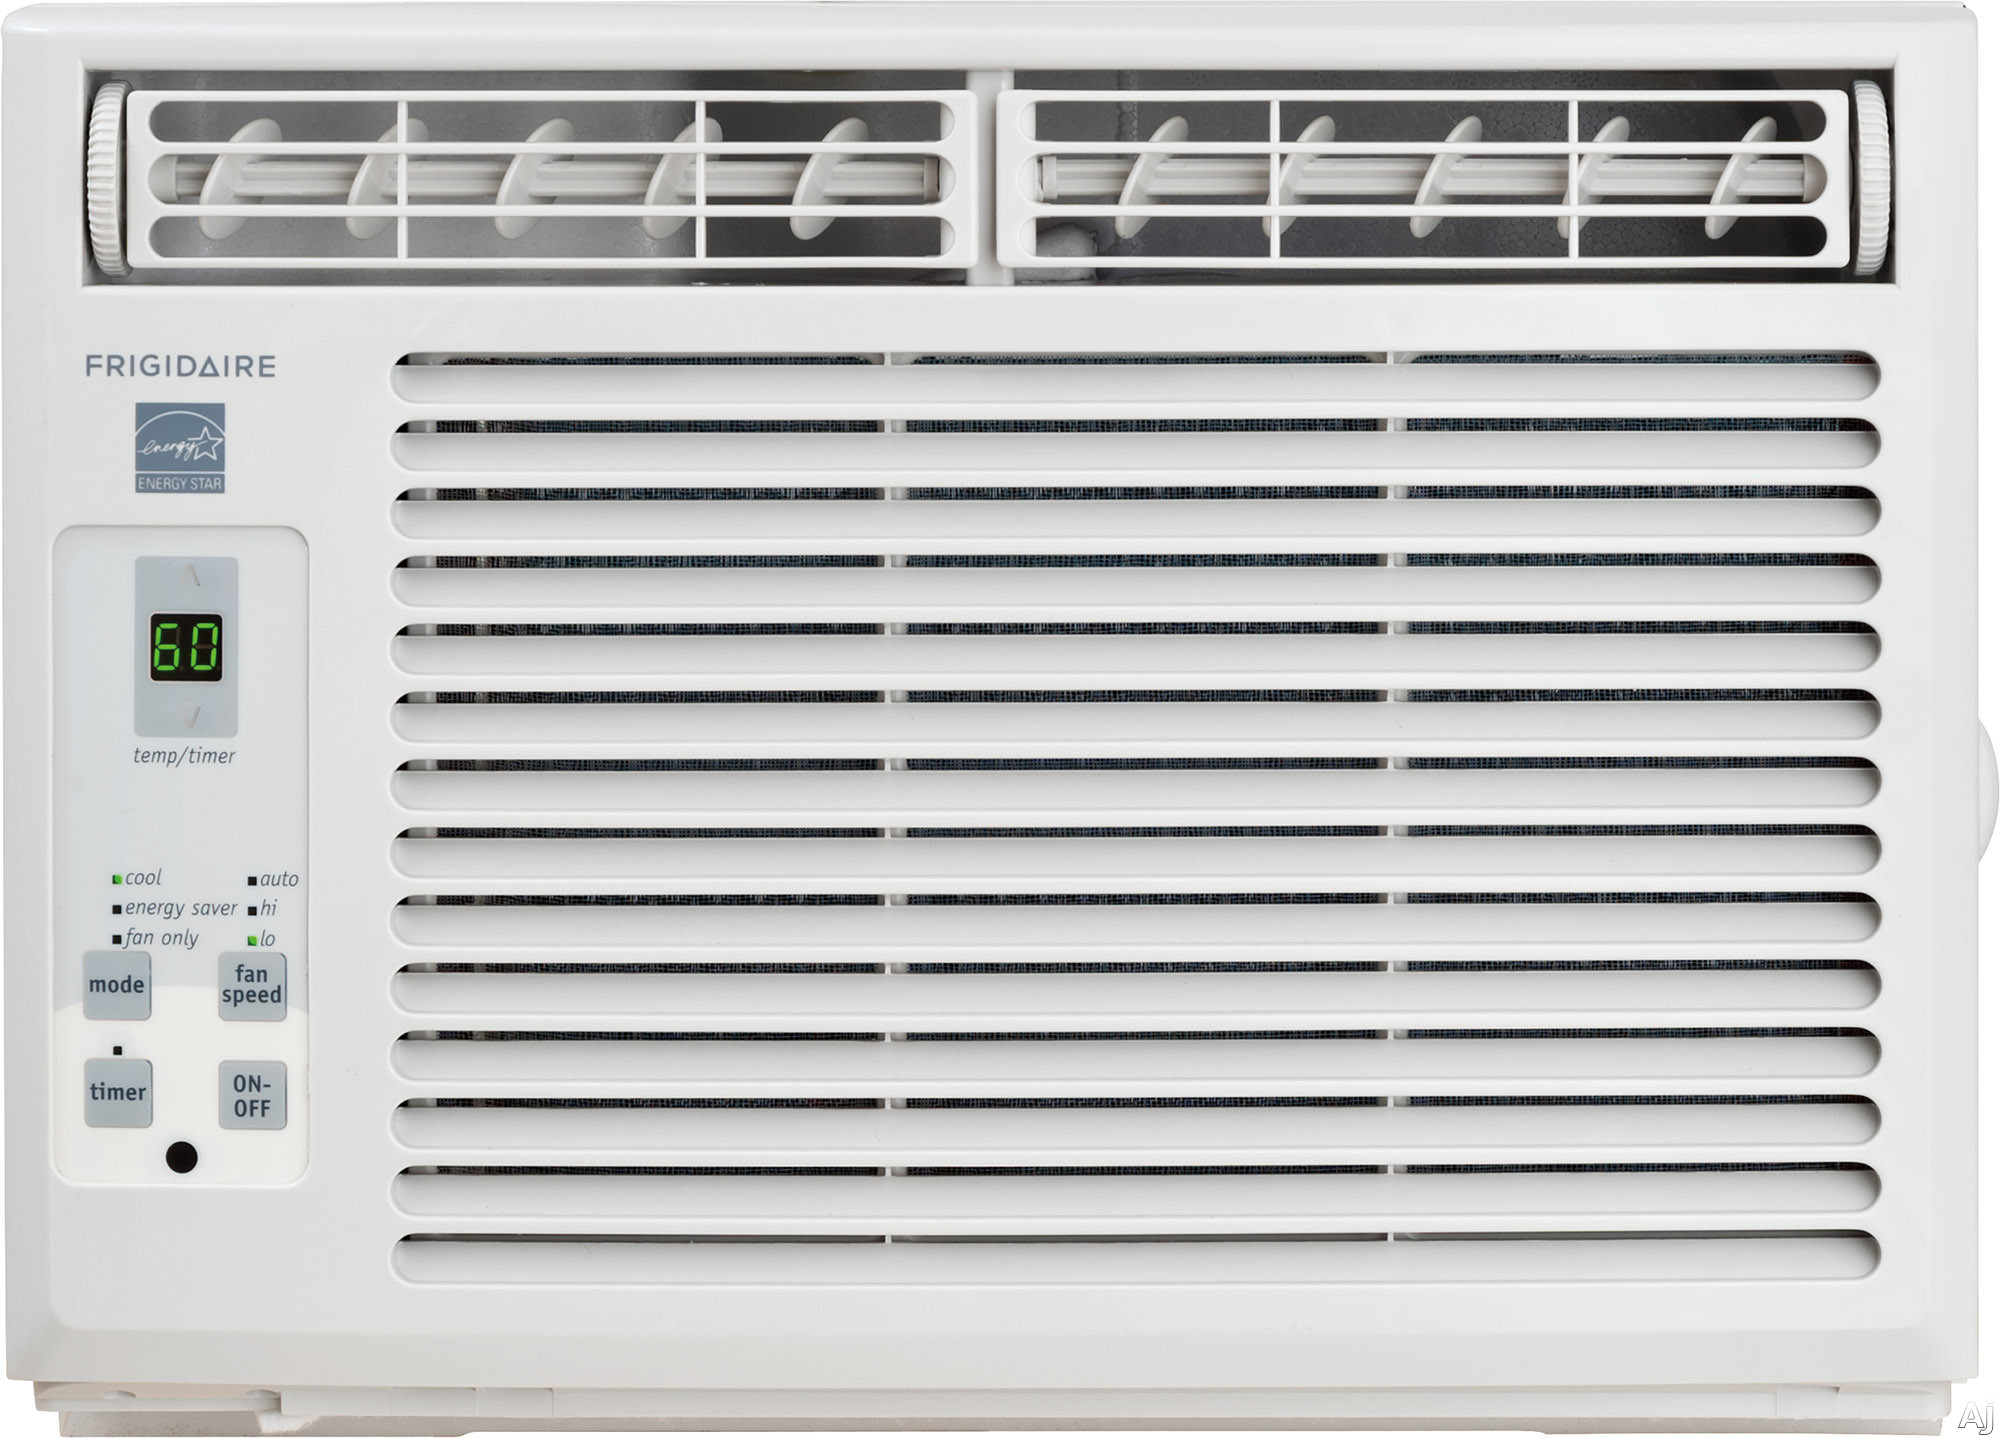 Frigidaire FFRE0533S1 5 000 BTU ENERGY STAR Window Air Conditioner with Digital Controls Remote Control 150 sq. ft. Cooling Area Ready Select Controls 24 Hour On Off Timer Energy Mode and Clean Filter